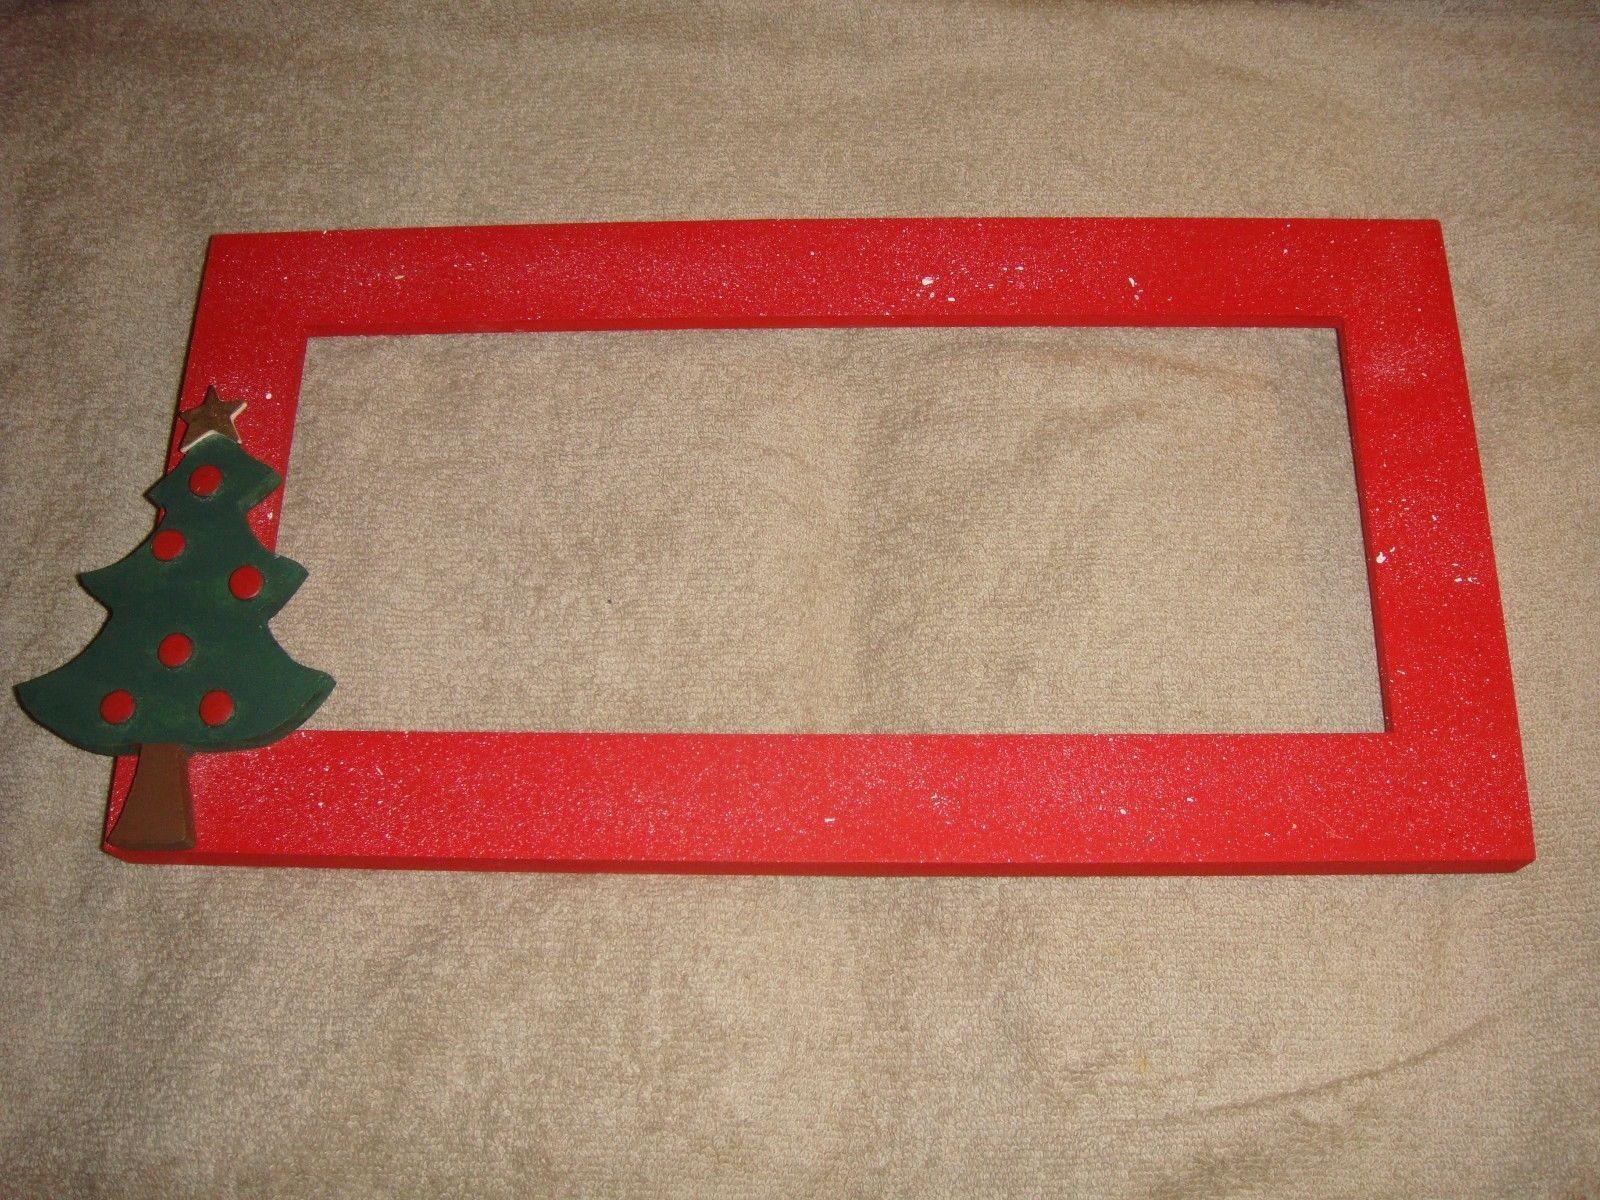 Red Wooden Cross Stitch Frame With Christmas Holiday Tree